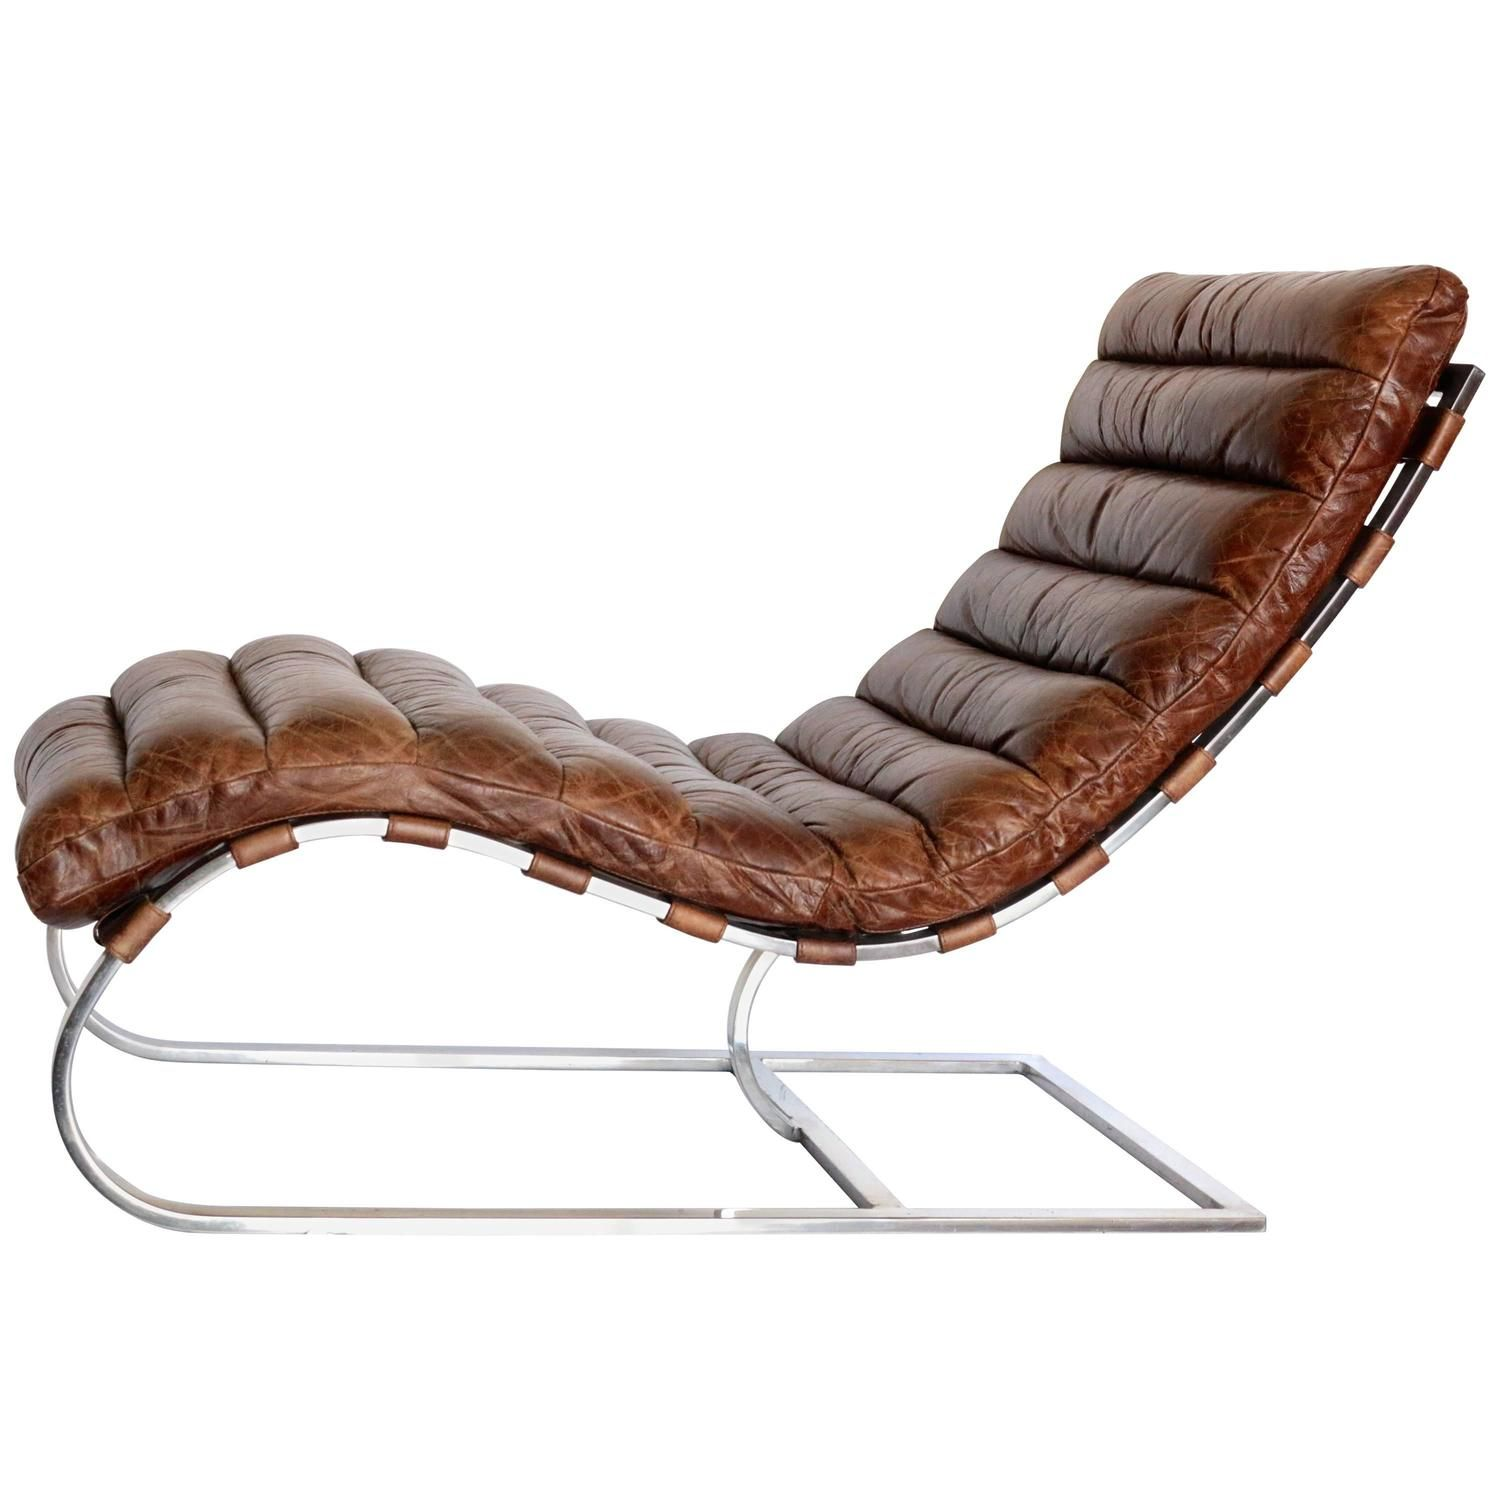 French Distressed Tufted Leather Chaise Longue Chair With Chrome